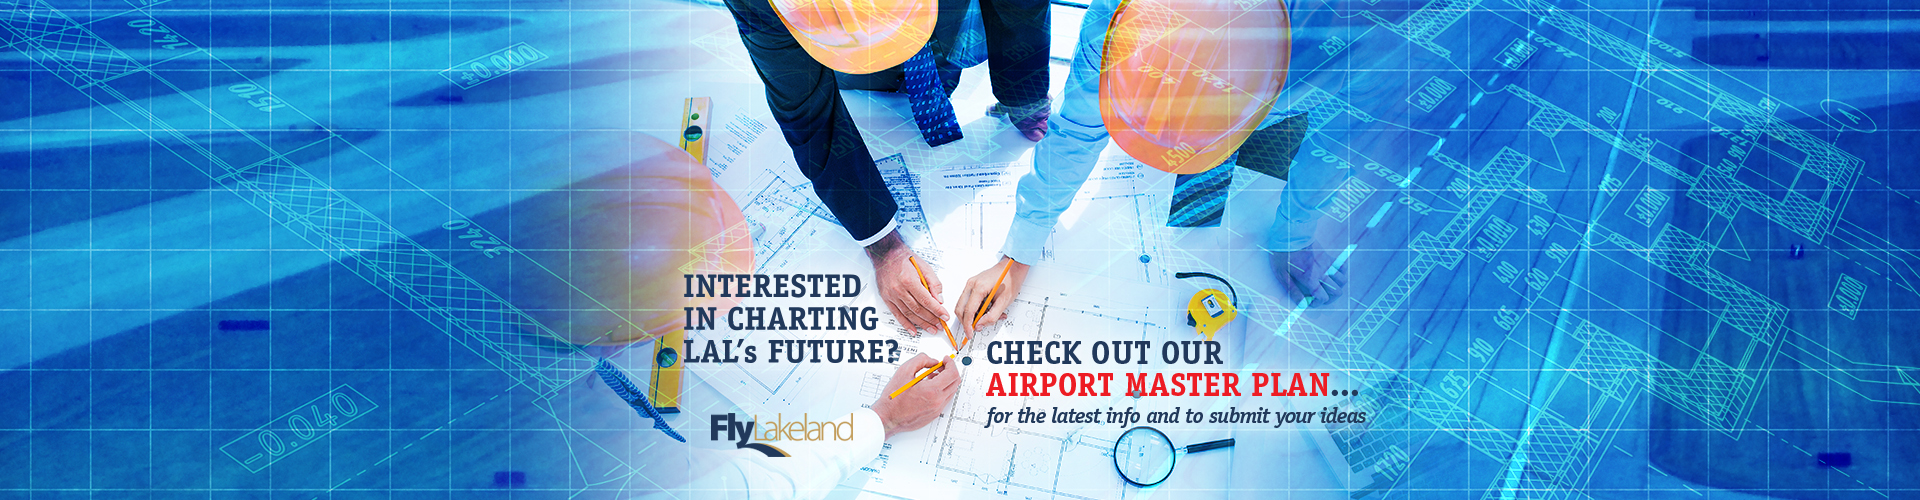 Interested in charting LAL's future - Check out our Airport Master Plan for the latest info and to submit your ideas